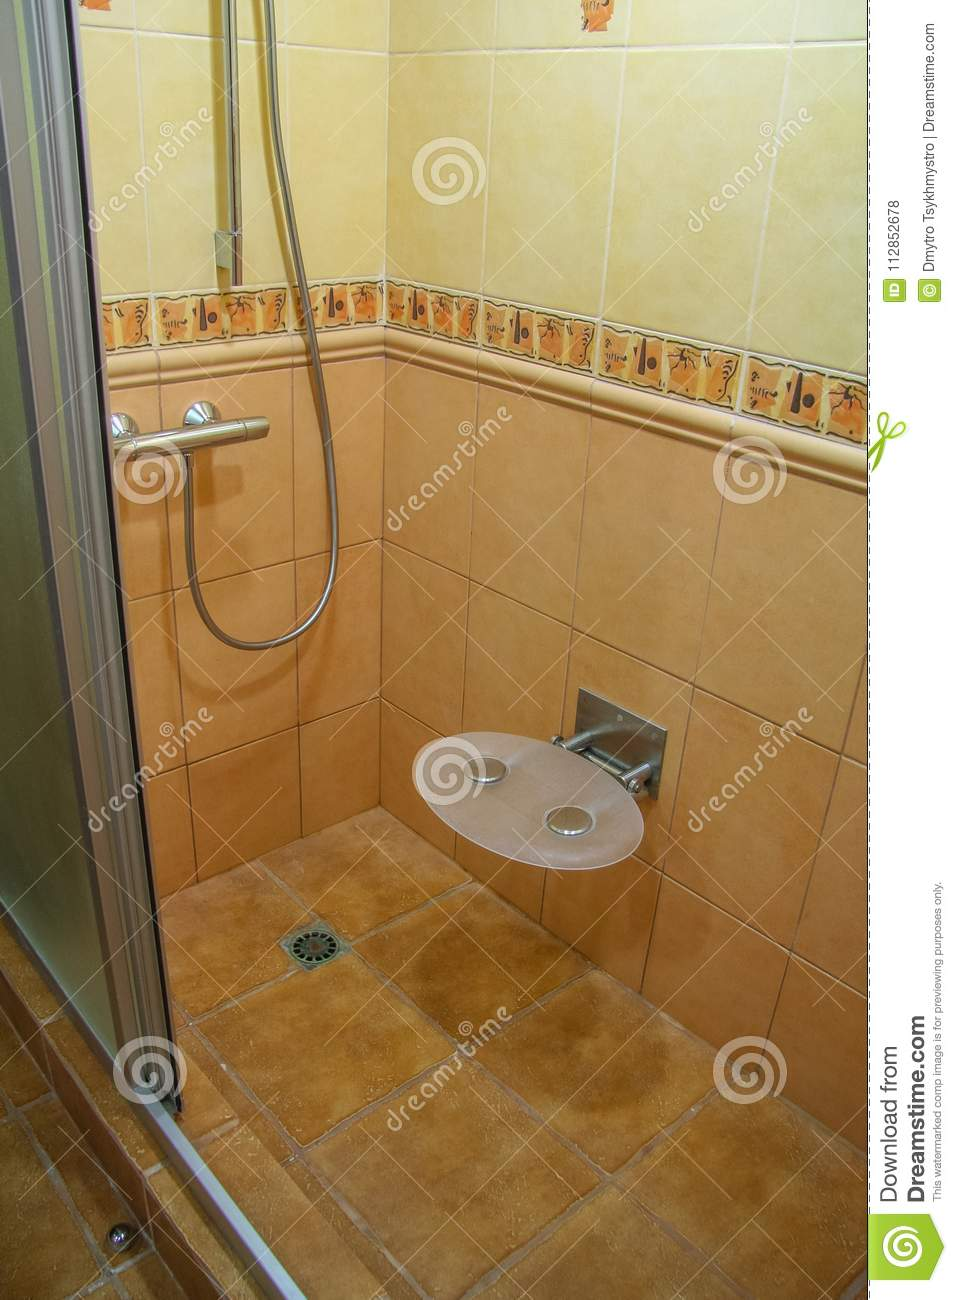 Watering can shower stock photo. Image of booth, tile - 112852678